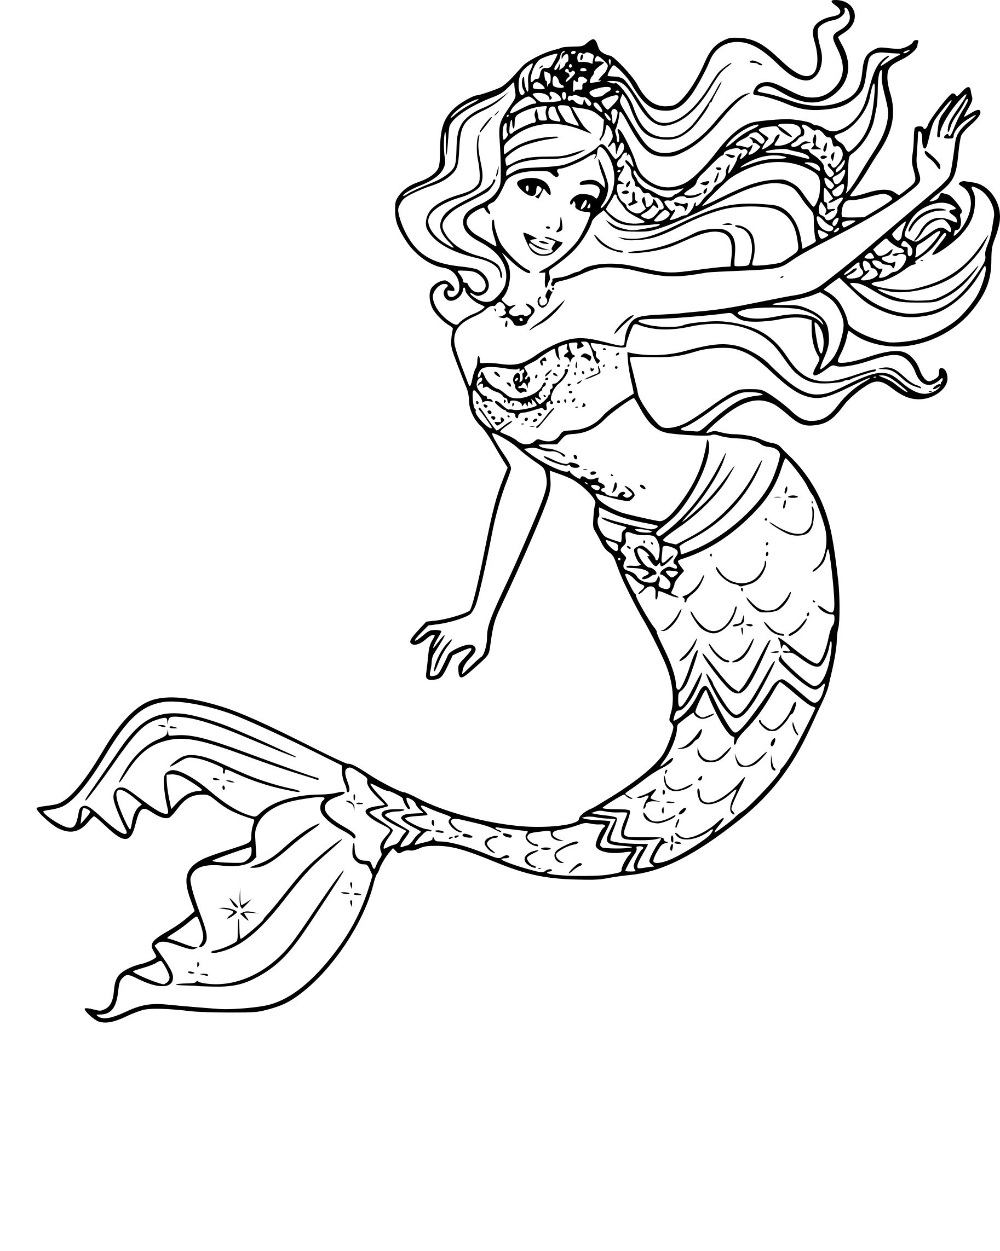 Mermaid Coloring Pages Barbie Best For Kids Simple Free in ...